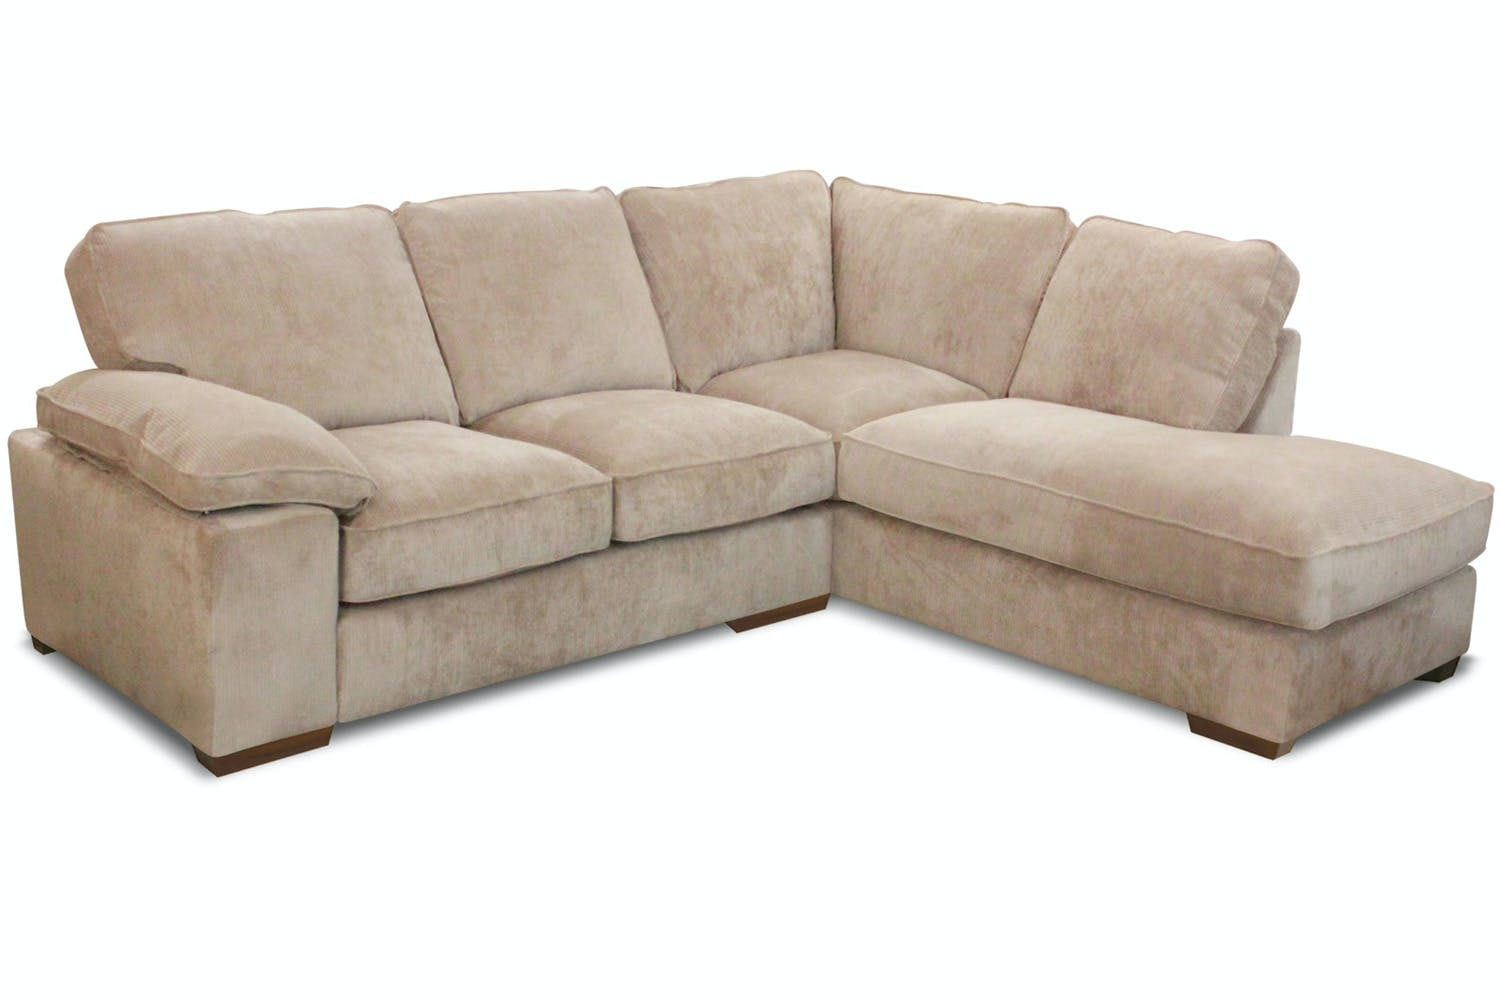 Utah corner sofa with sofa bed harvey norman harvey norman ireland Couches bed